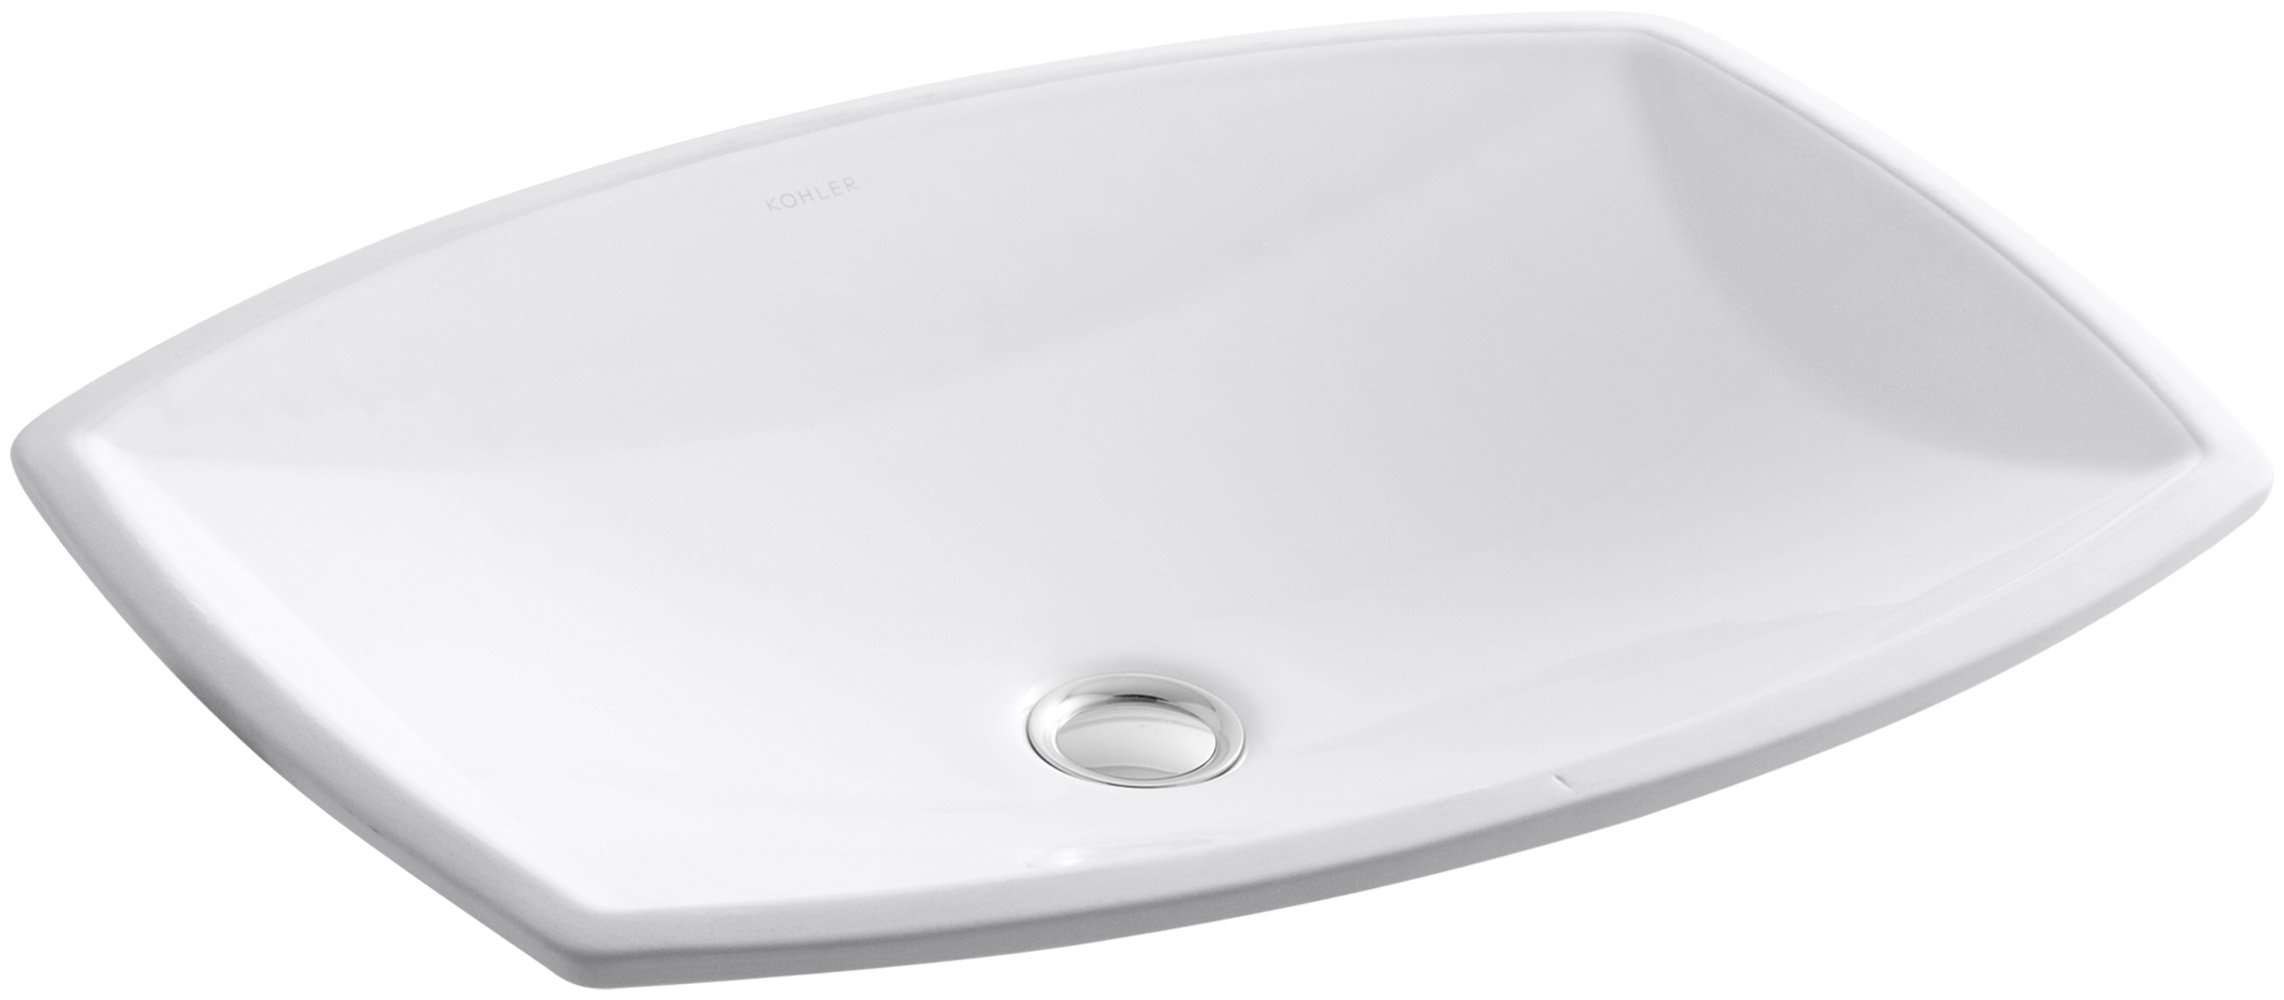 KOHLER K-2382-0 Kelston Undercounter Bathroom Sink, White by Kohler